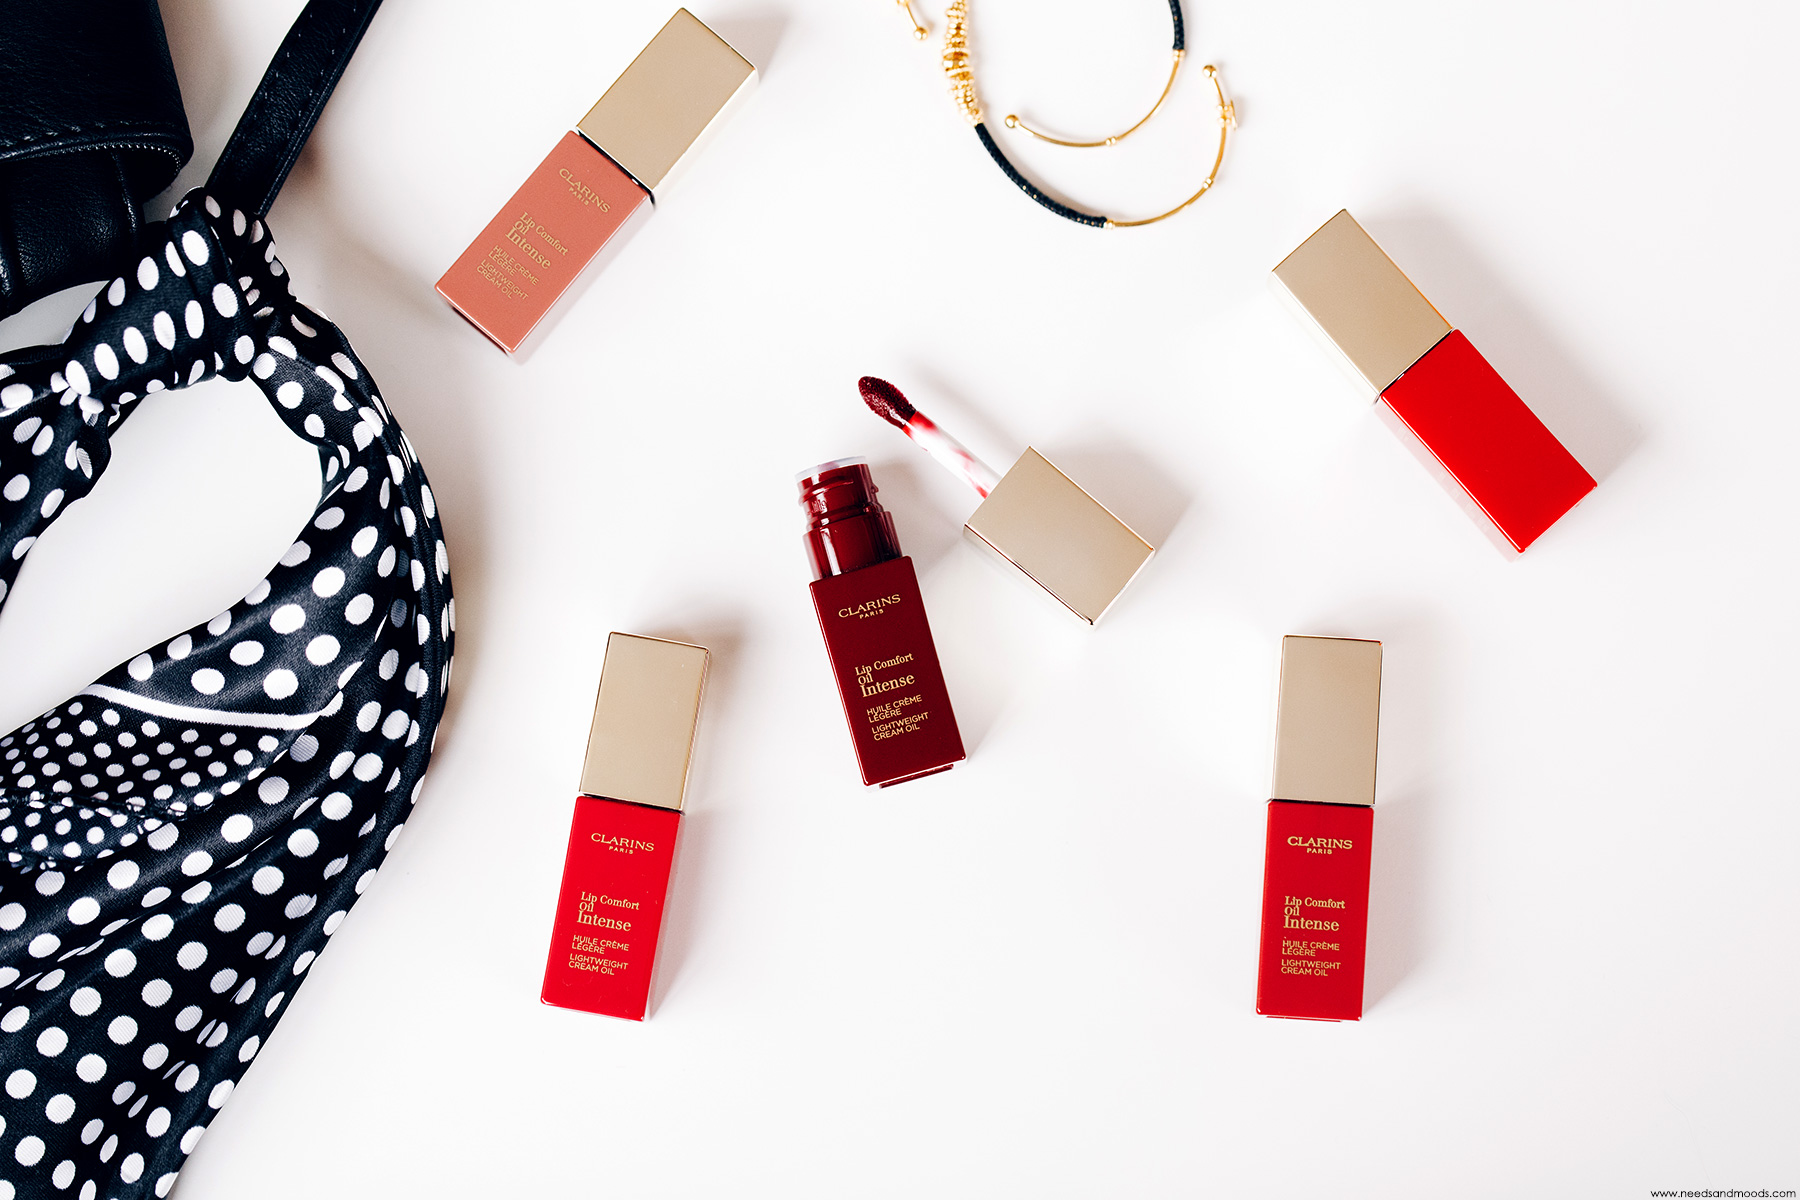 lip comfort oil intense clarins